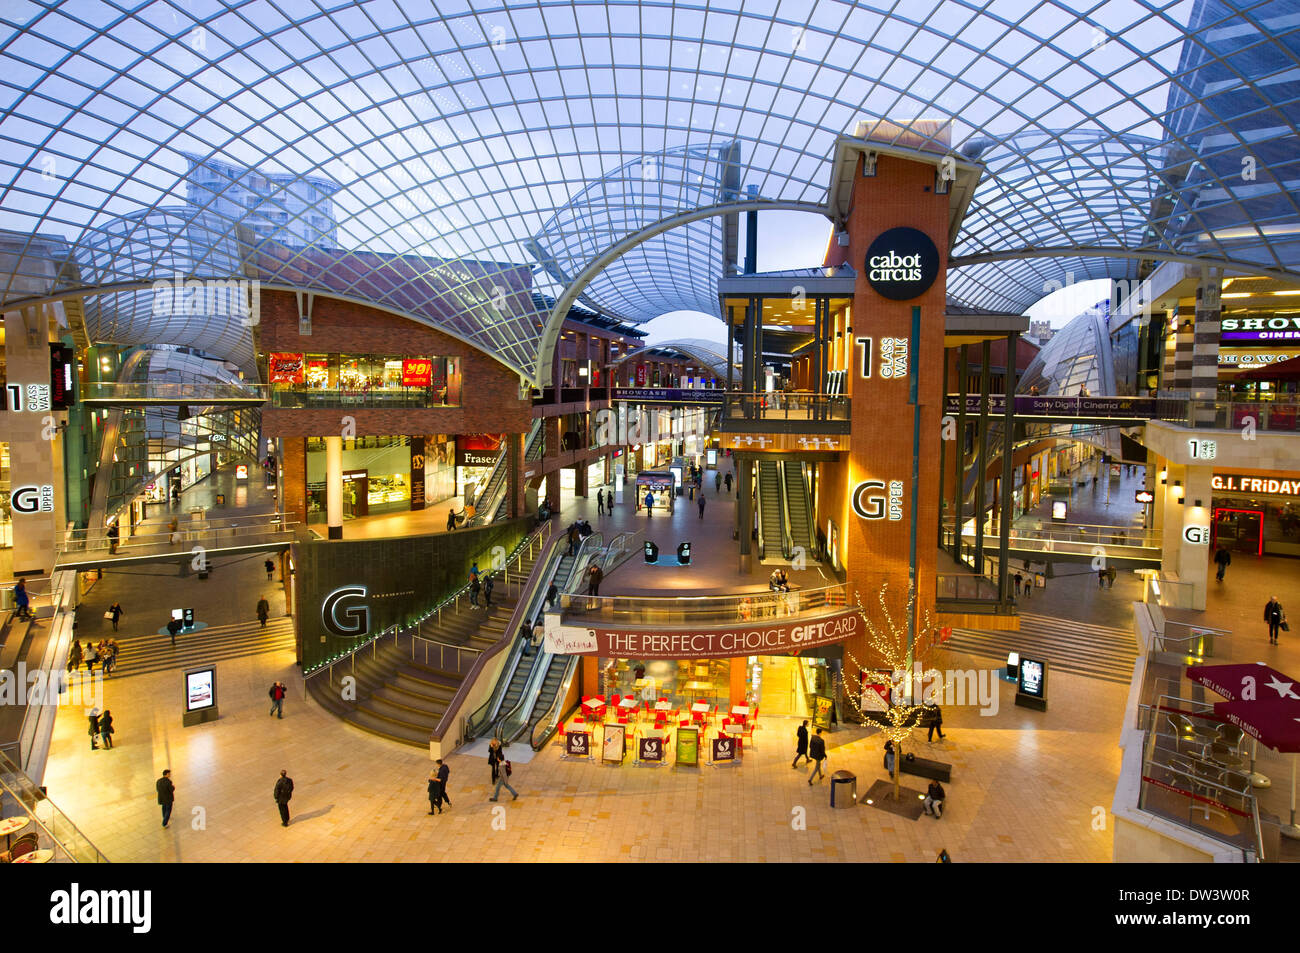 Cabot circus shopping centre in Bristol. - Stock Image